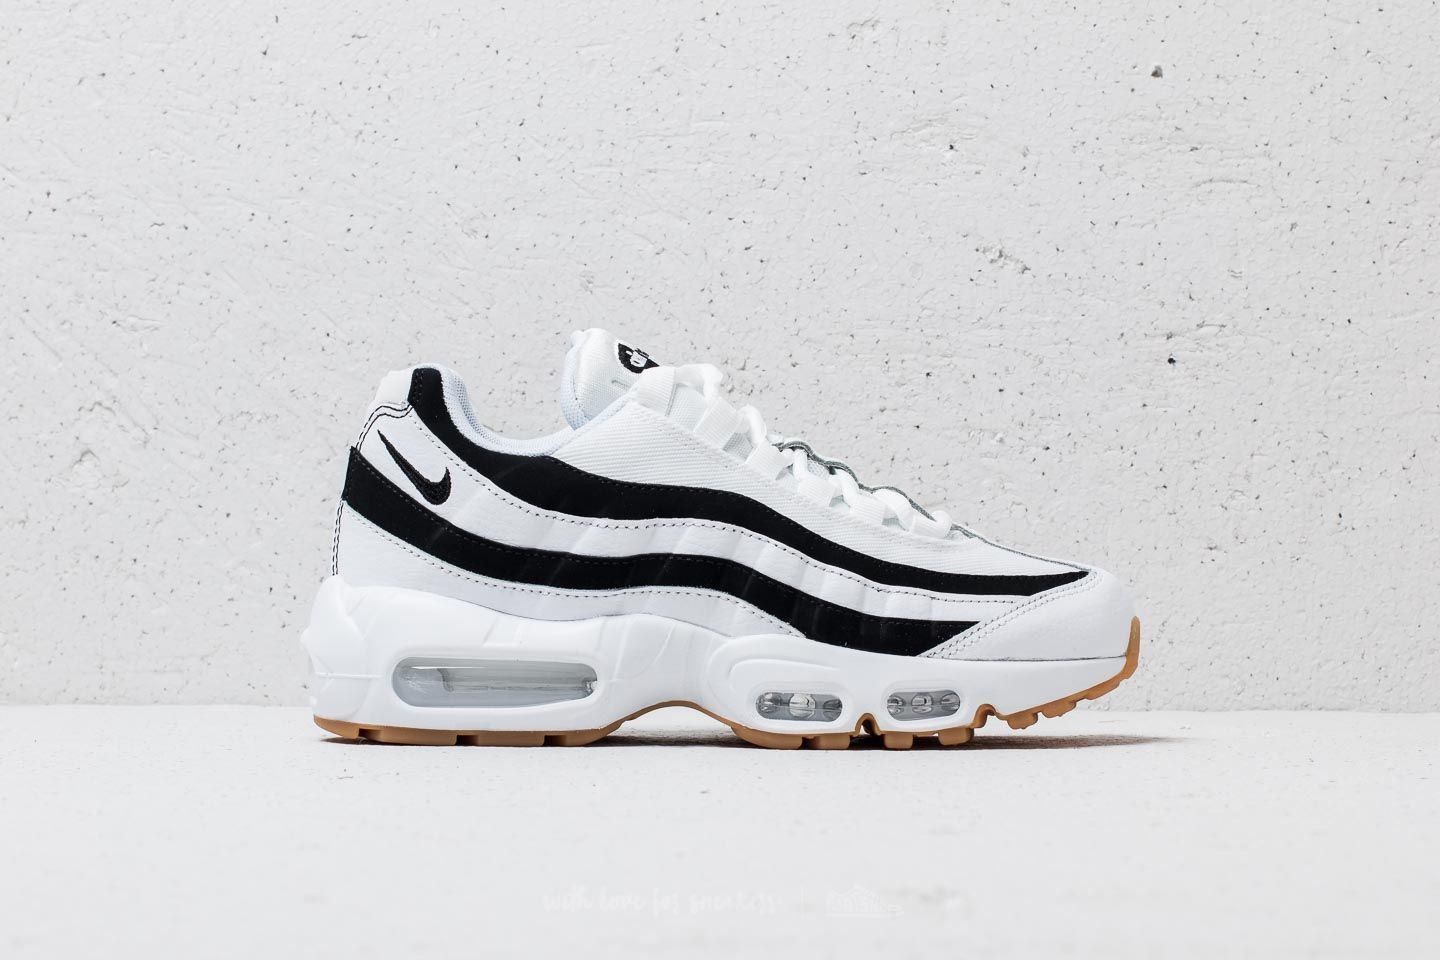 100% authentic 1e9fe 99939 Nike Wmns Air Max 95 White  Black-Gum Light Brown at a great price